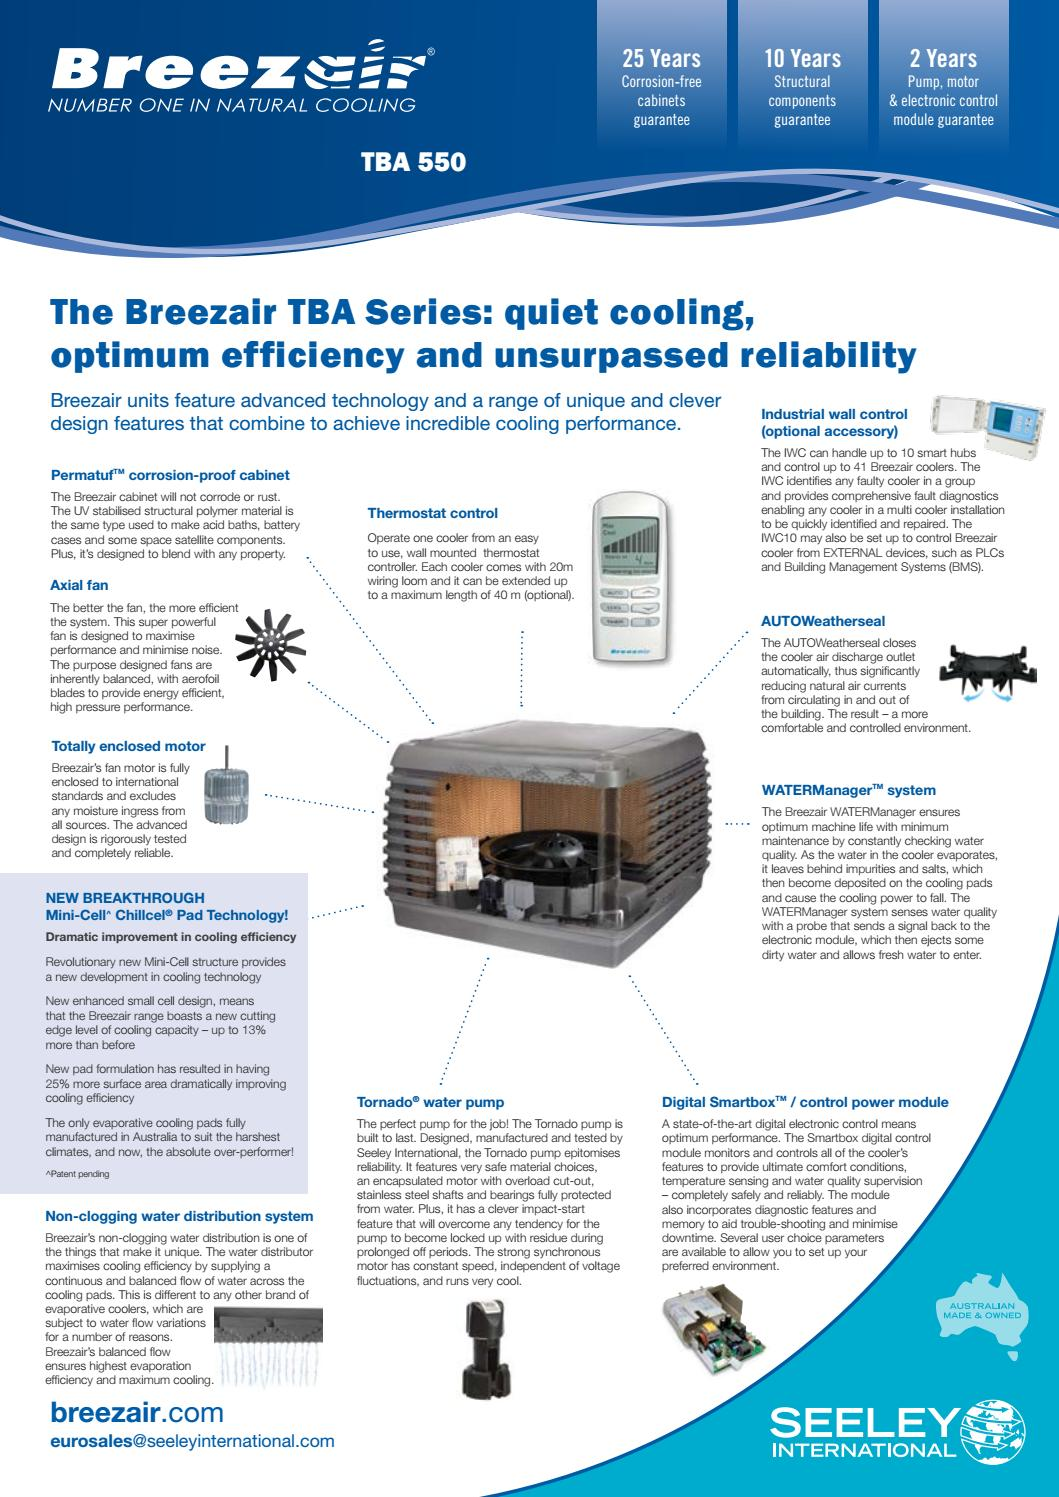 Breezair Tba Series Cooler : Breezair europe tba by seeley international issuu